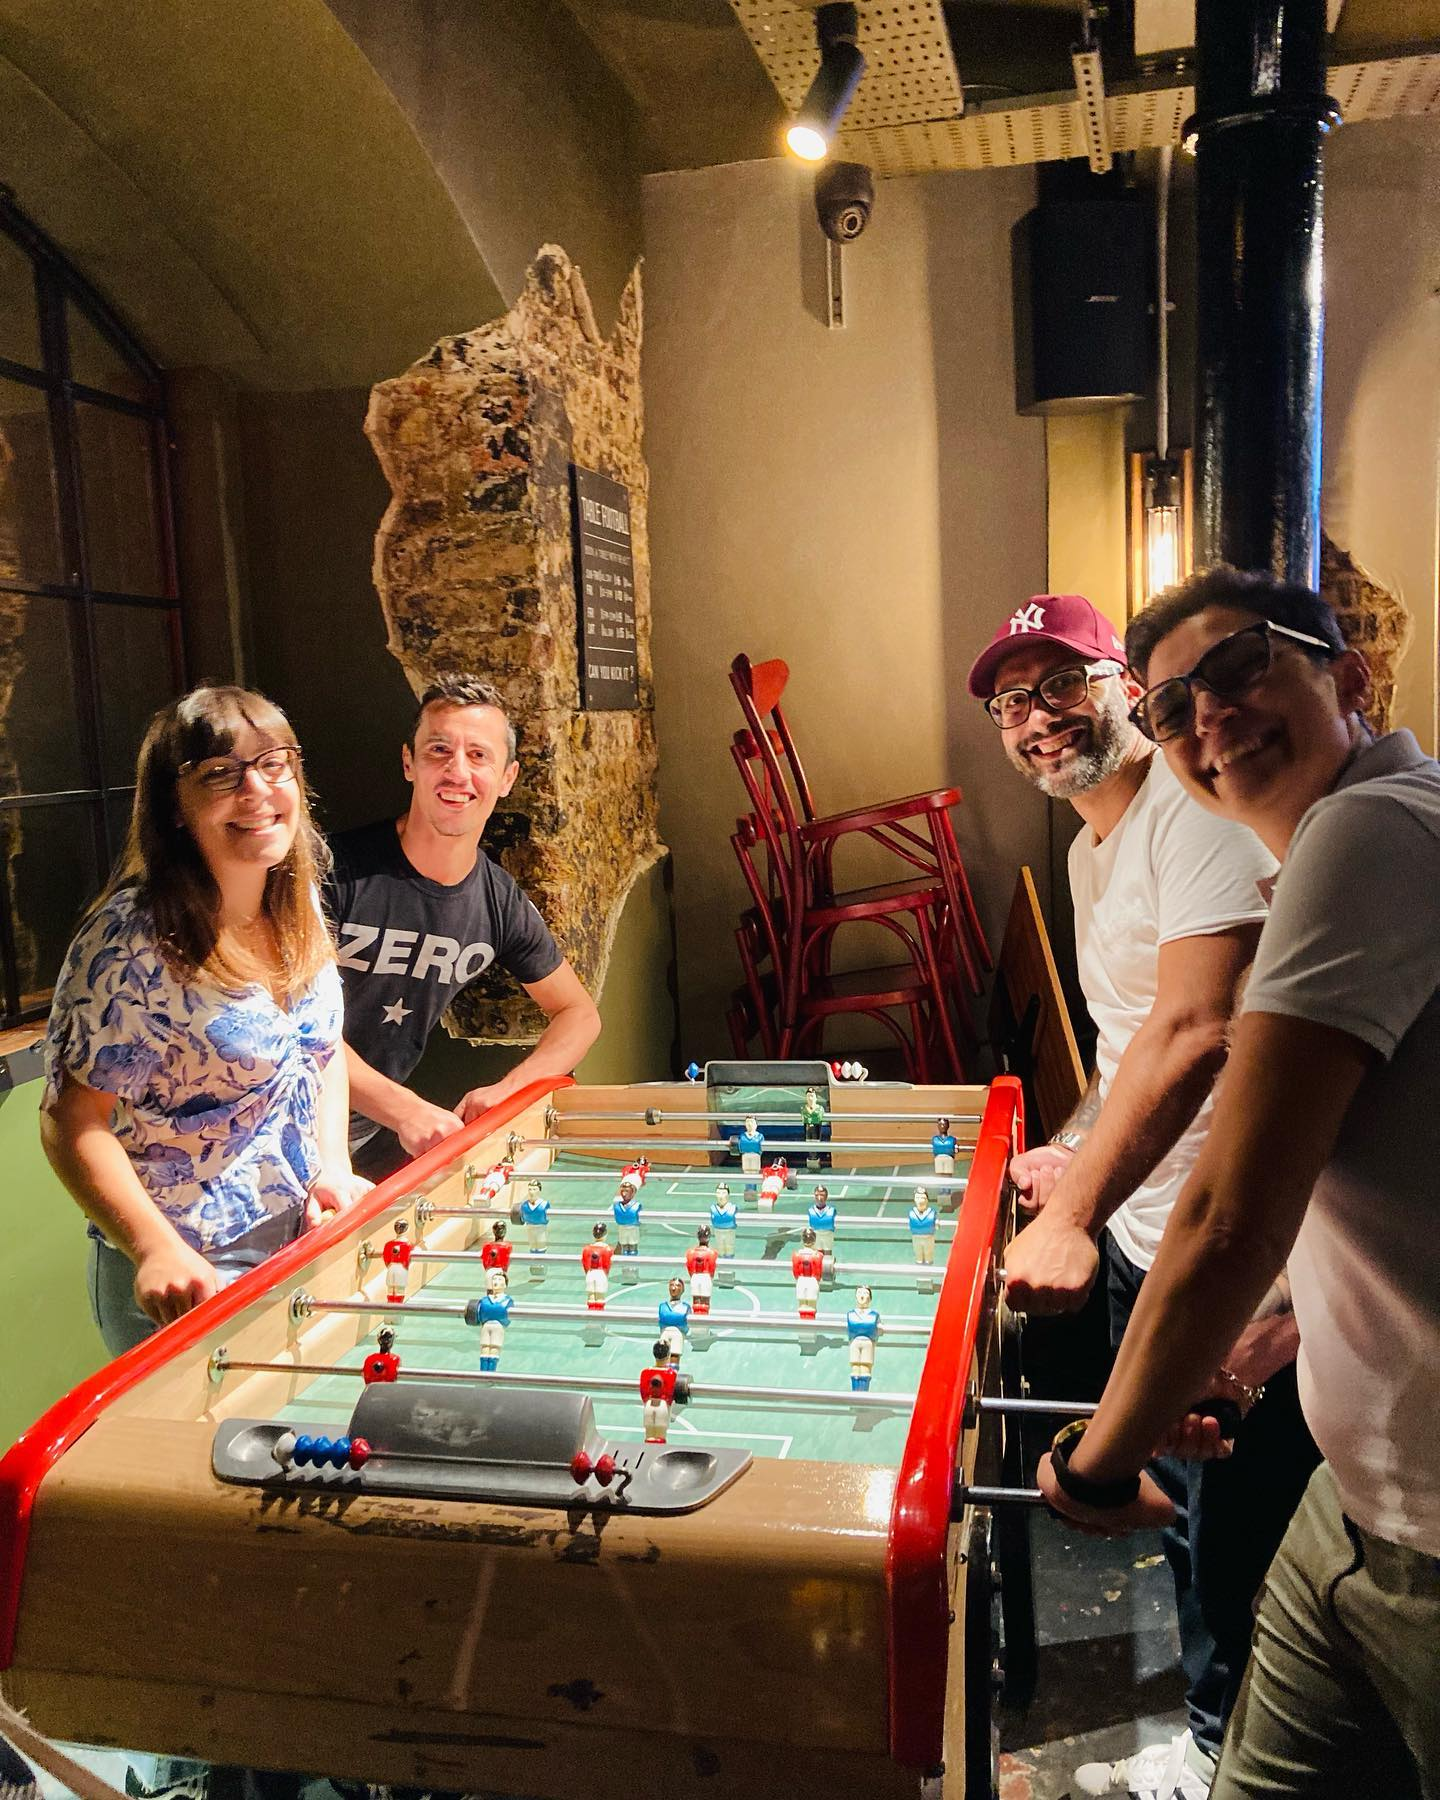 Fear not Man Utd fans, your team might not of won today, but you can always beat your fiends at Foosball down at kick. We've still got a few tables in our basement bar. ⚽️⚽️🍻 . . . #foosball #tablefootball #football #table #football #bargames #games #craftbeer #beer #cocktails #fun #shoreditch #london #barkick #eastlondon